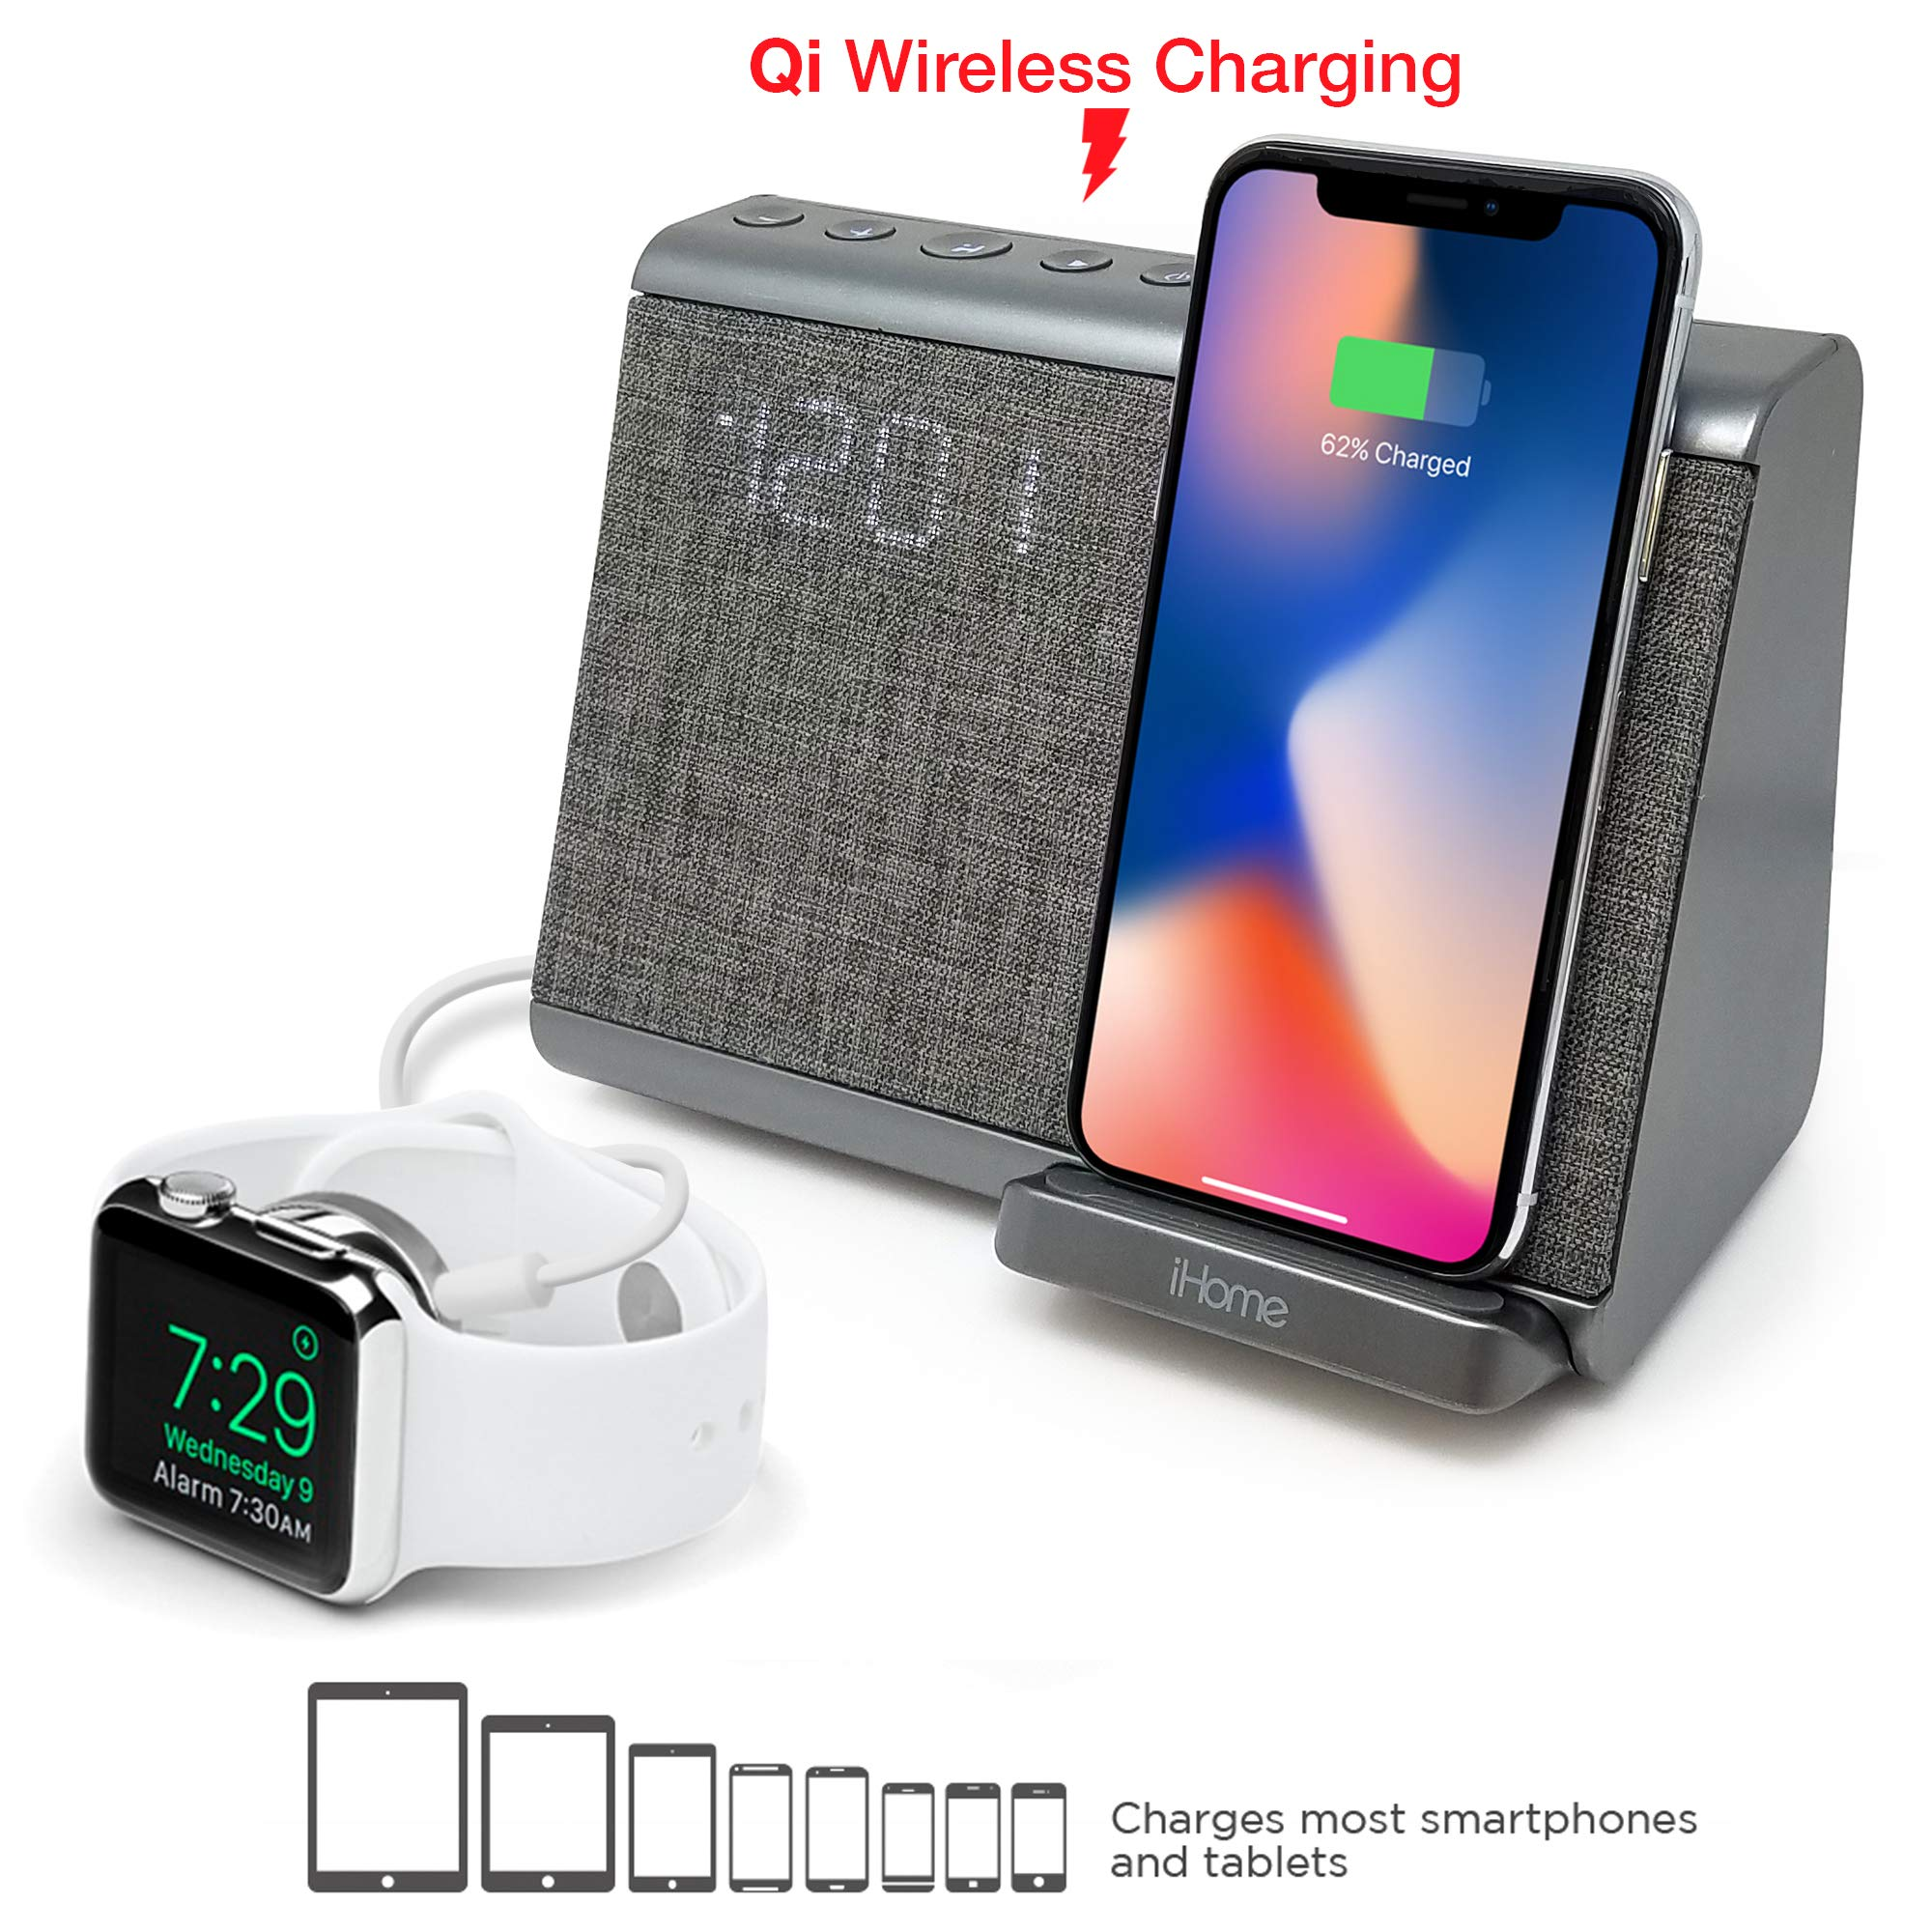 iHome iBTW39 Bluetooth Dual Alarm Clock with Wireless Charging, Speakerphone and USB Charging Port by iHome